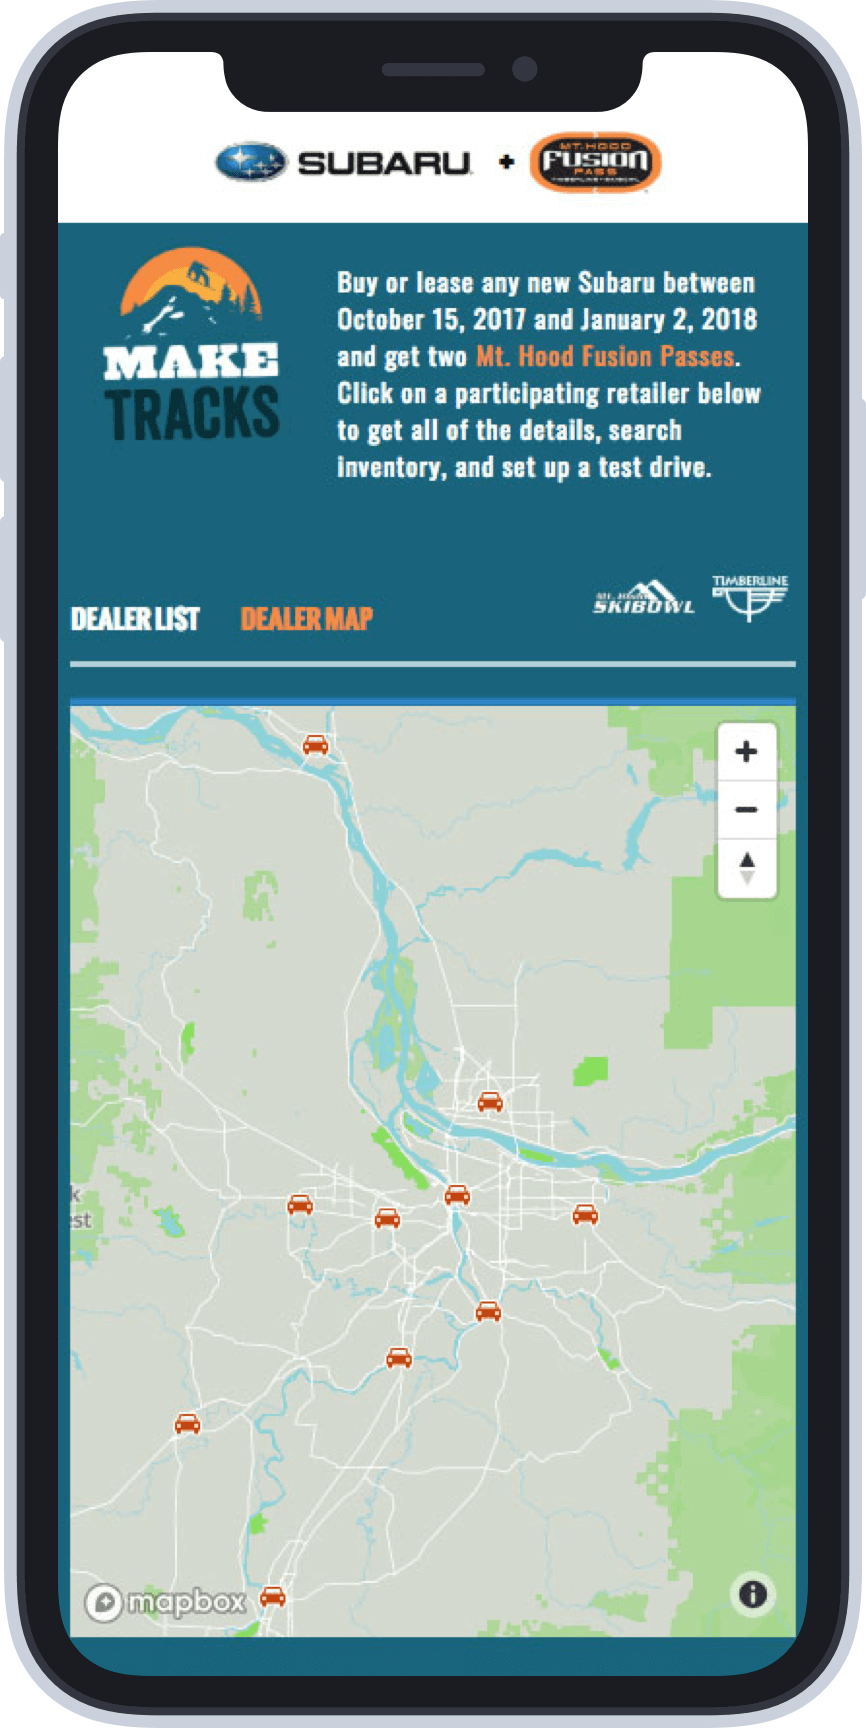 A mobile screen showing the Suburu Mt. Hood Fusion Pass dealer locator page.